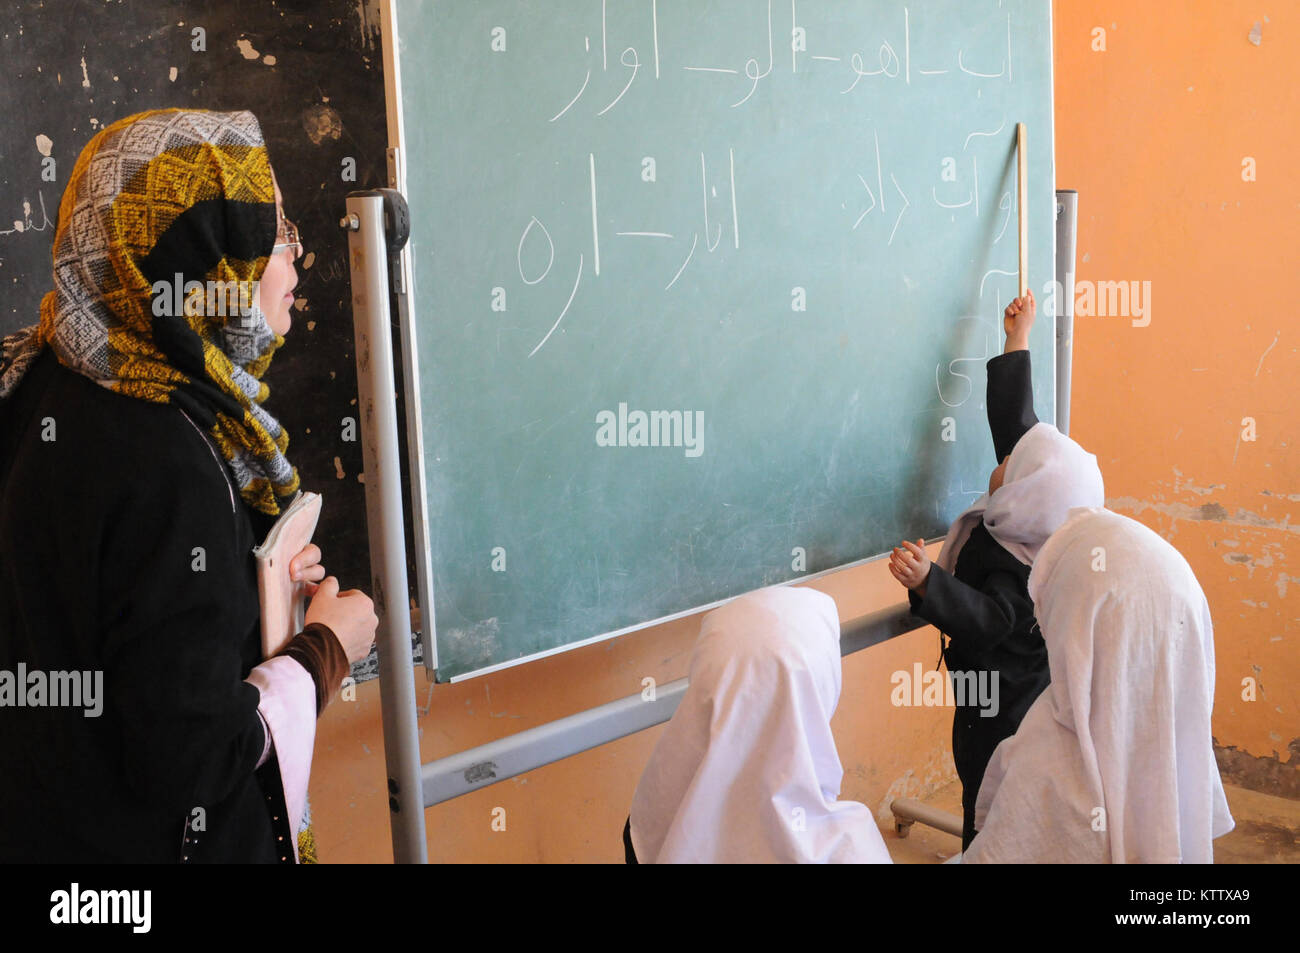 A young Afghan girl points out a word to her teacher at the Aliabad School near Mazar-e-Sharif, Balkh Province, Stock Photo